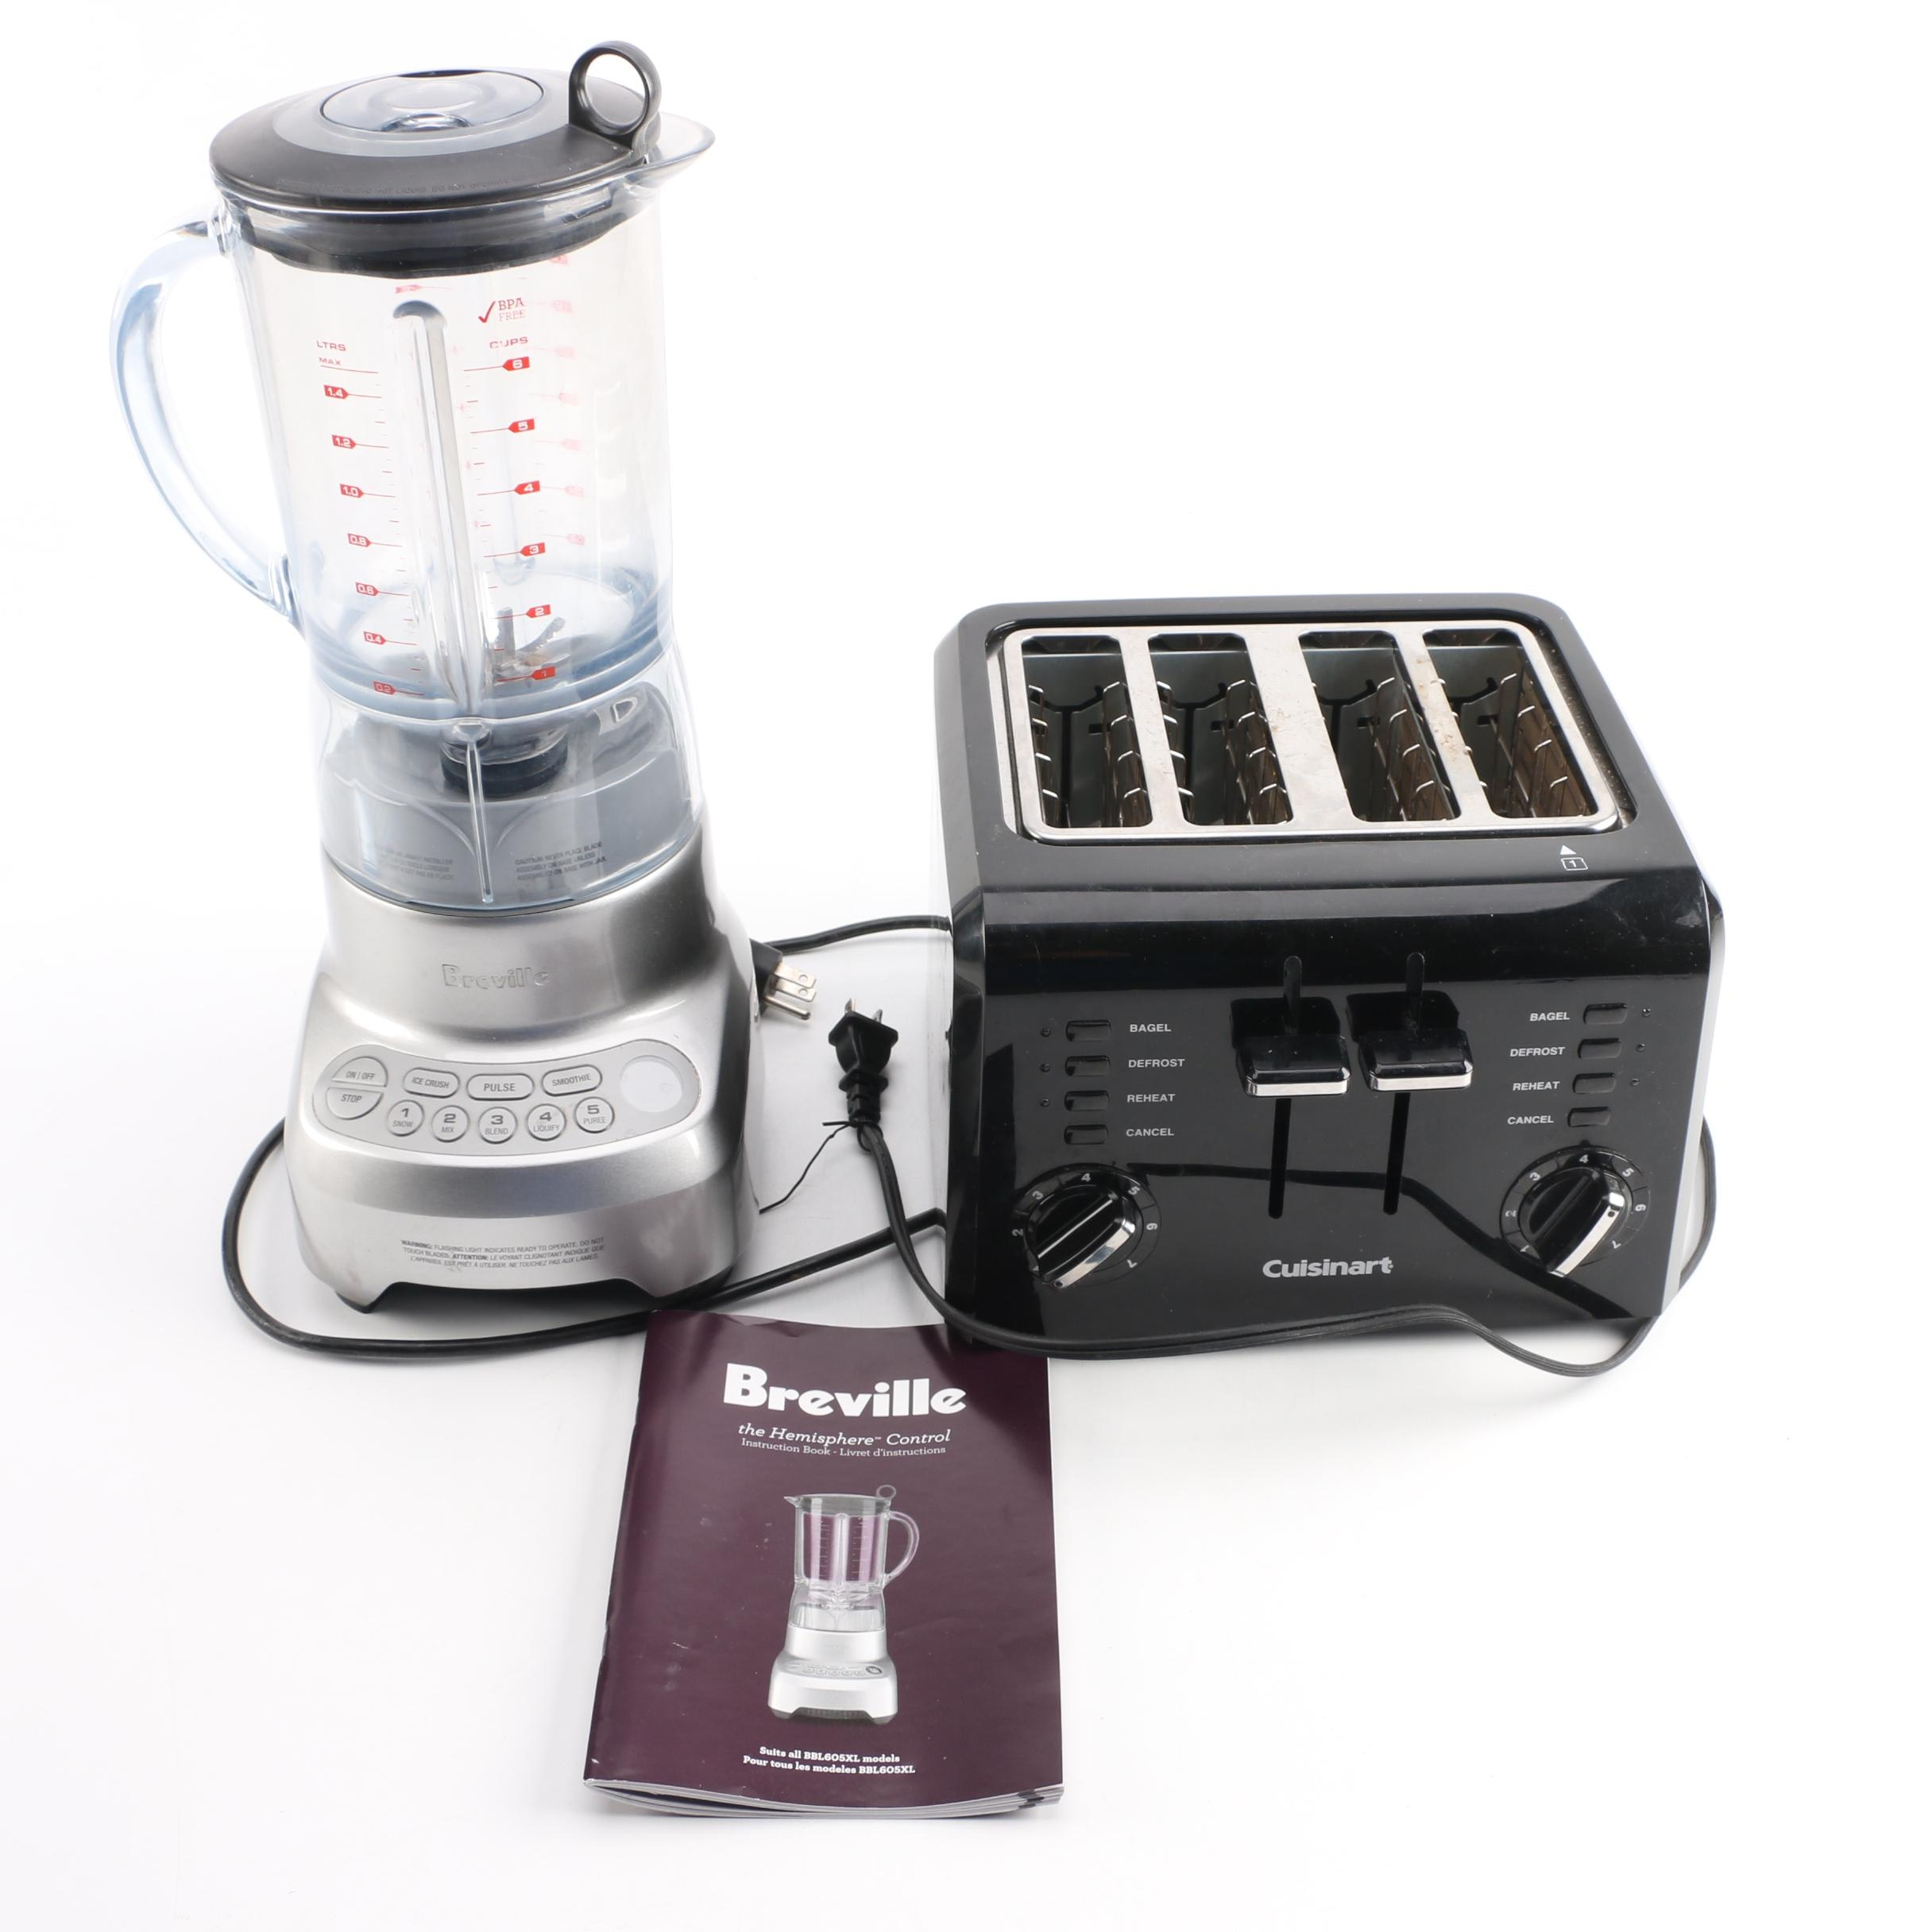 Breville Blender and Cuisinart Double Toaster EBTH